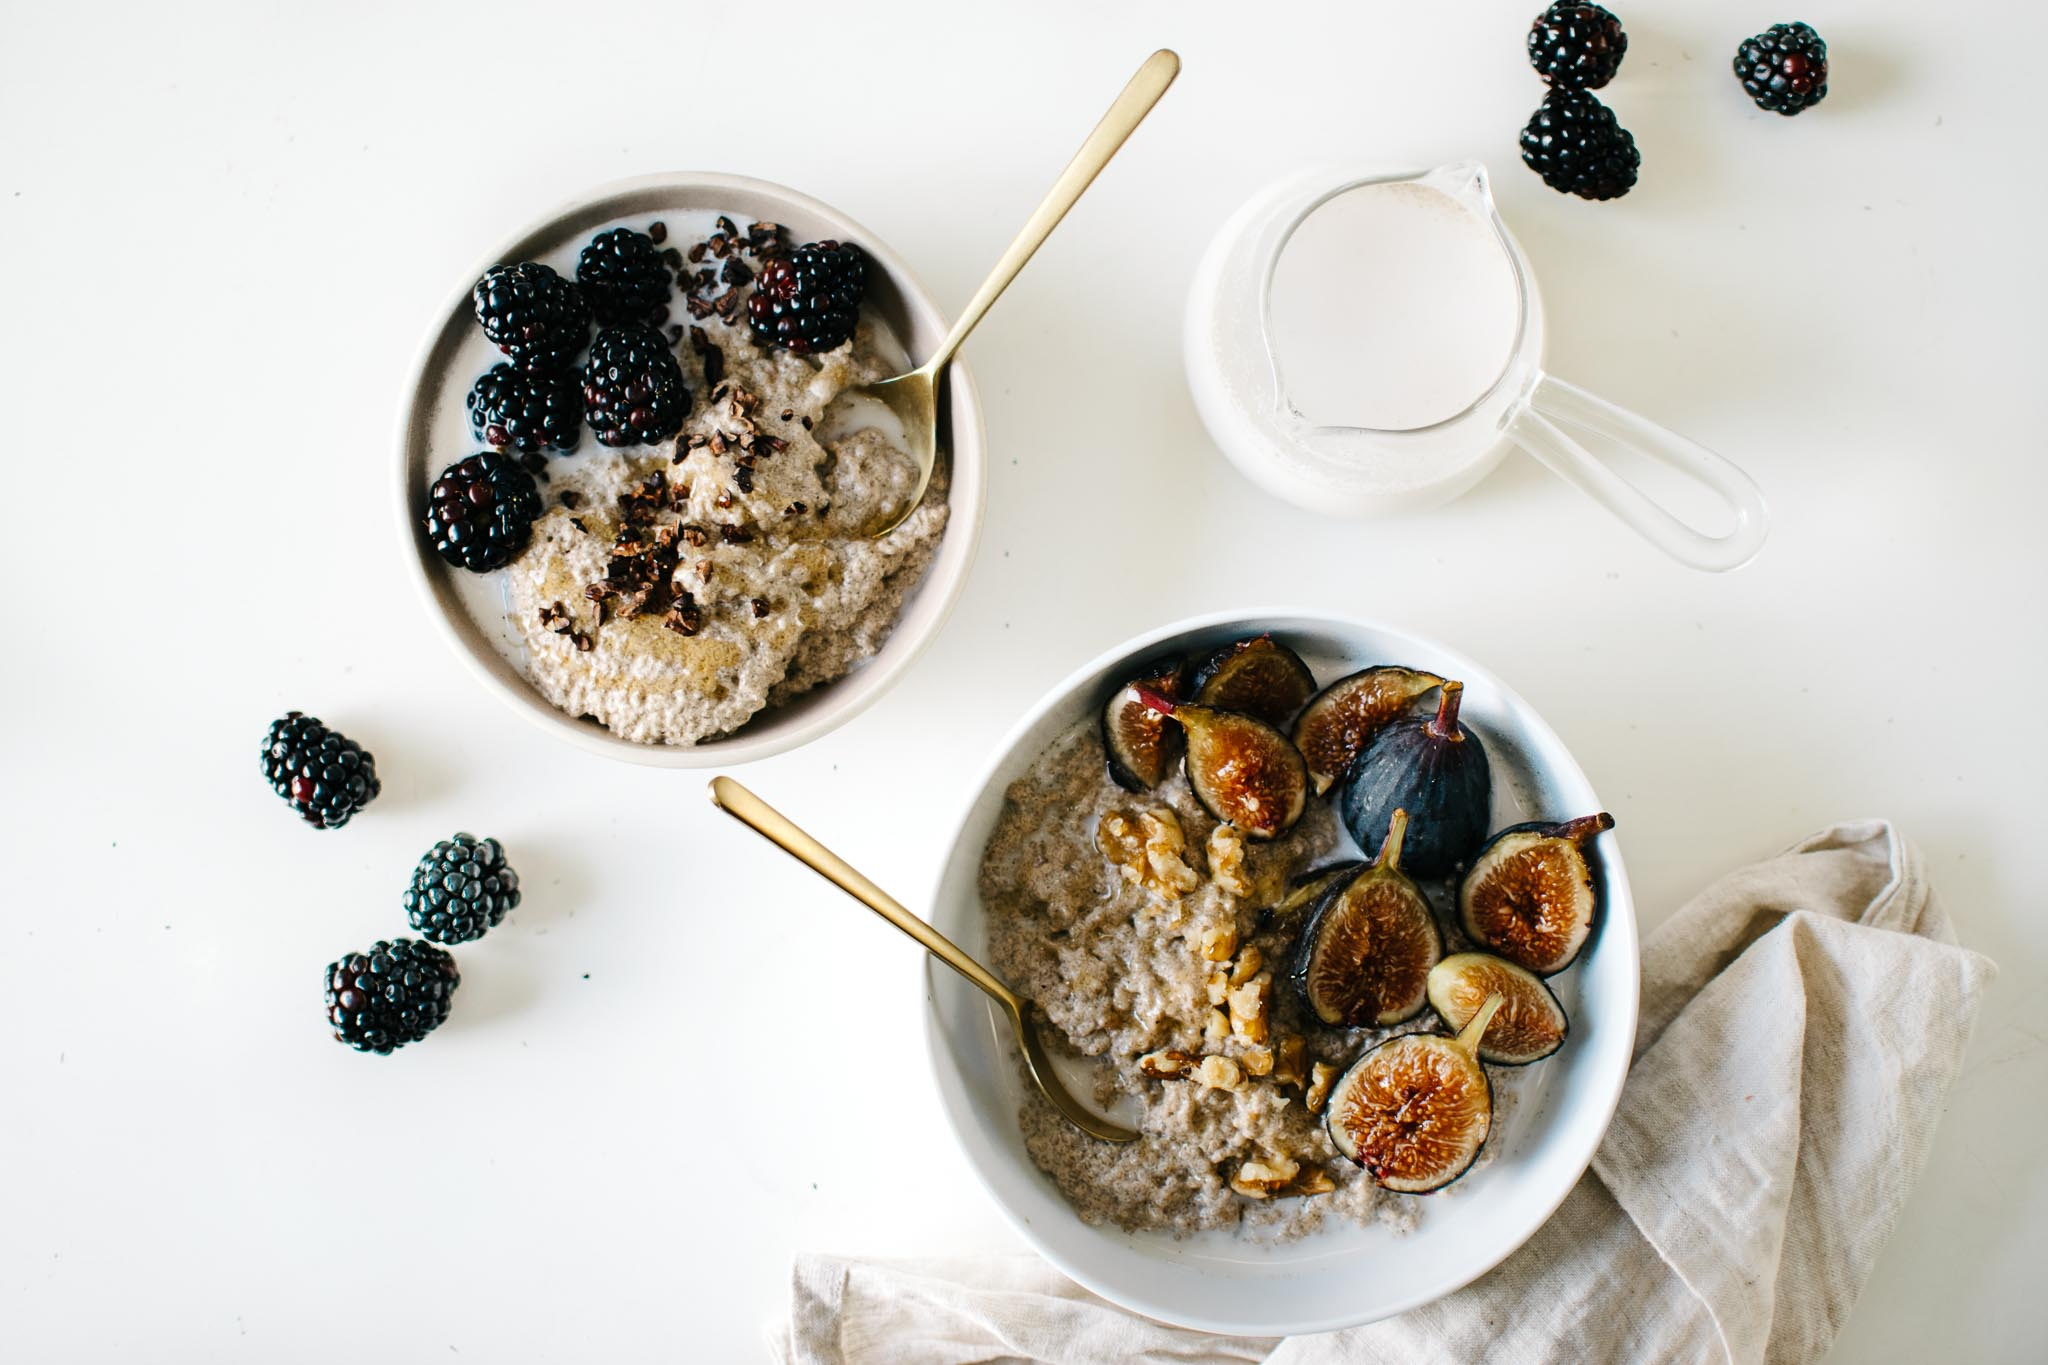 Hot Chia Seed Porridge with Hemp Walnut Milk